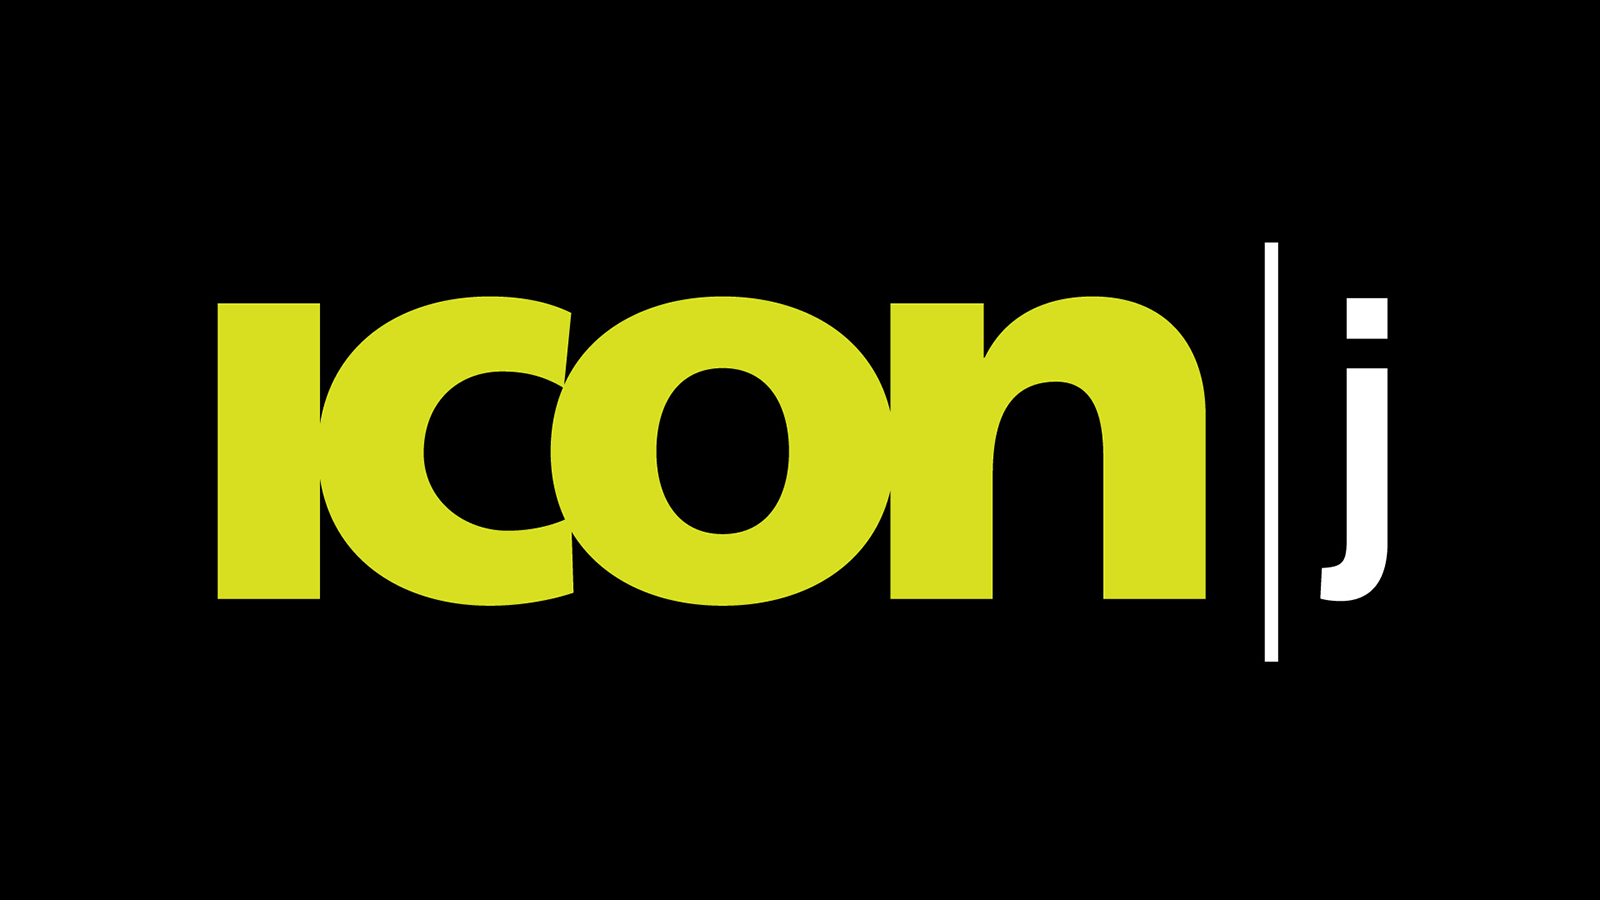 icon-junior-1600x900.png